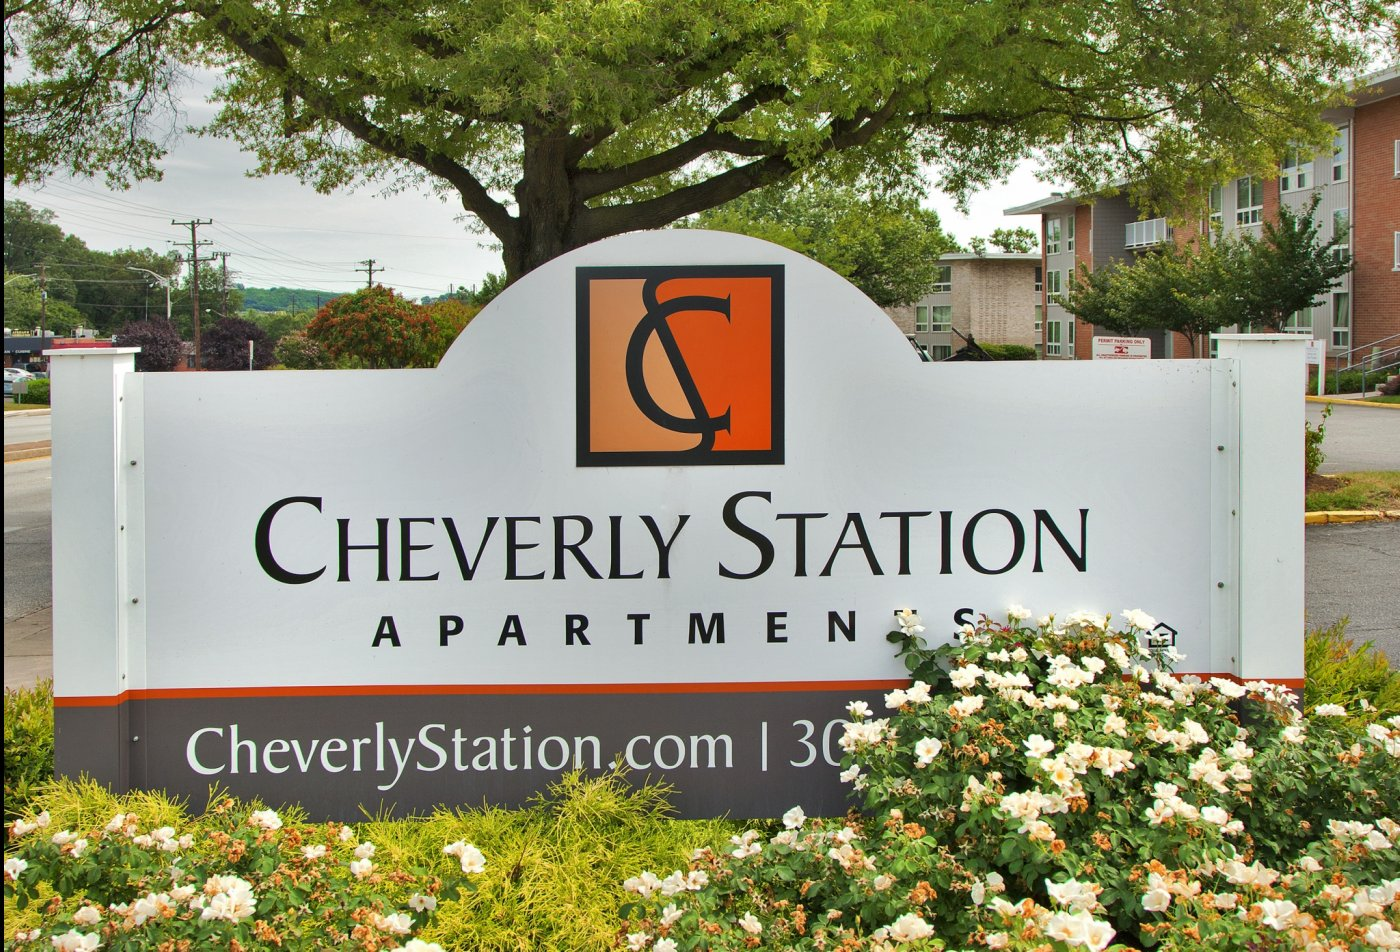 Cheverly Station Apartments